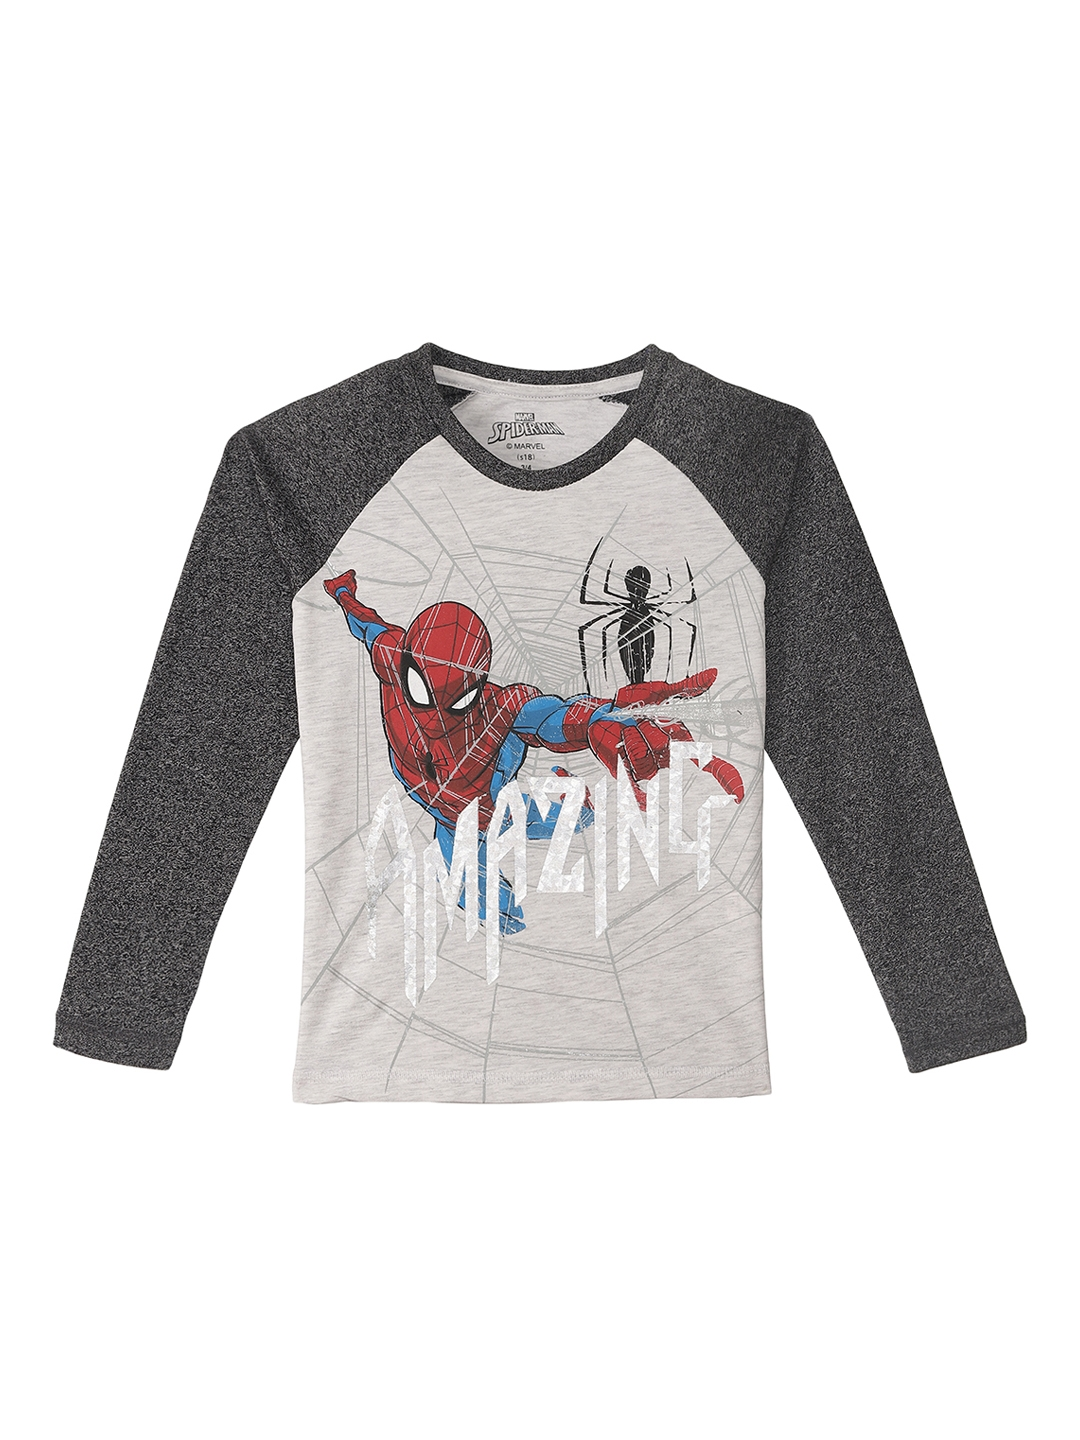 5a5a632c Buy Kids Ville Boys Grey Printed Spiderman T Shirt - Tshirts for ...